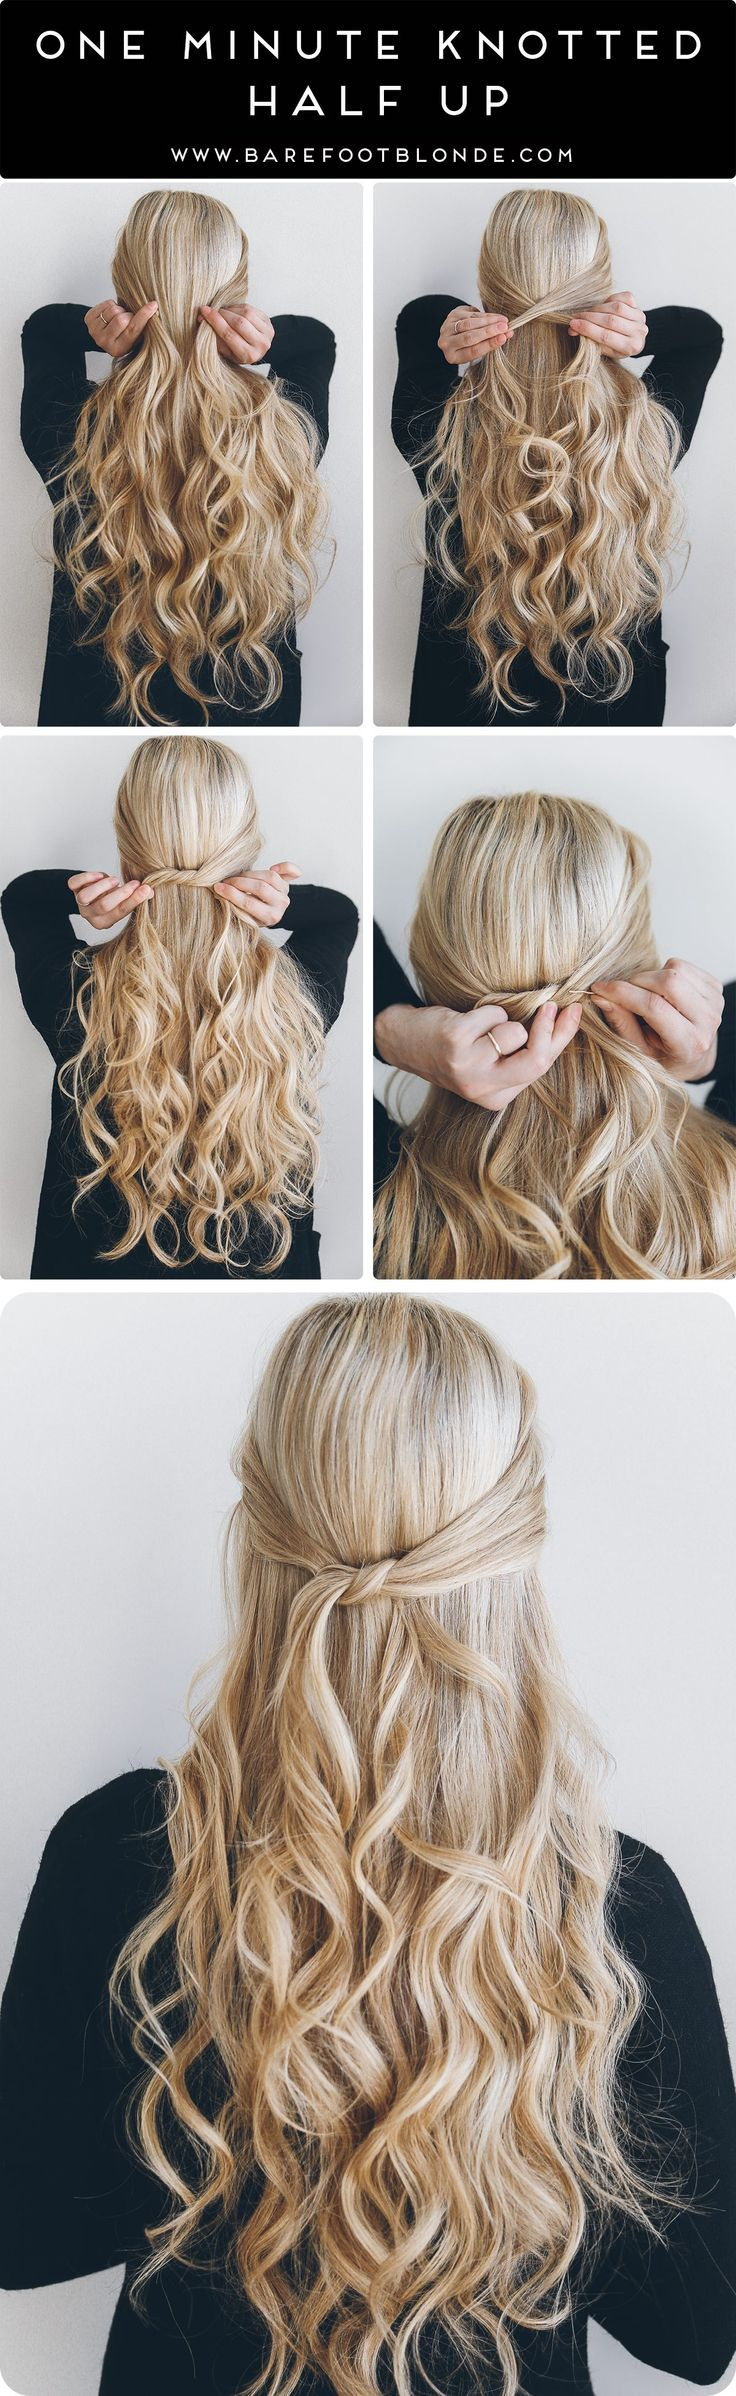 best recreate images on pinterest embroidery casual hairstyles